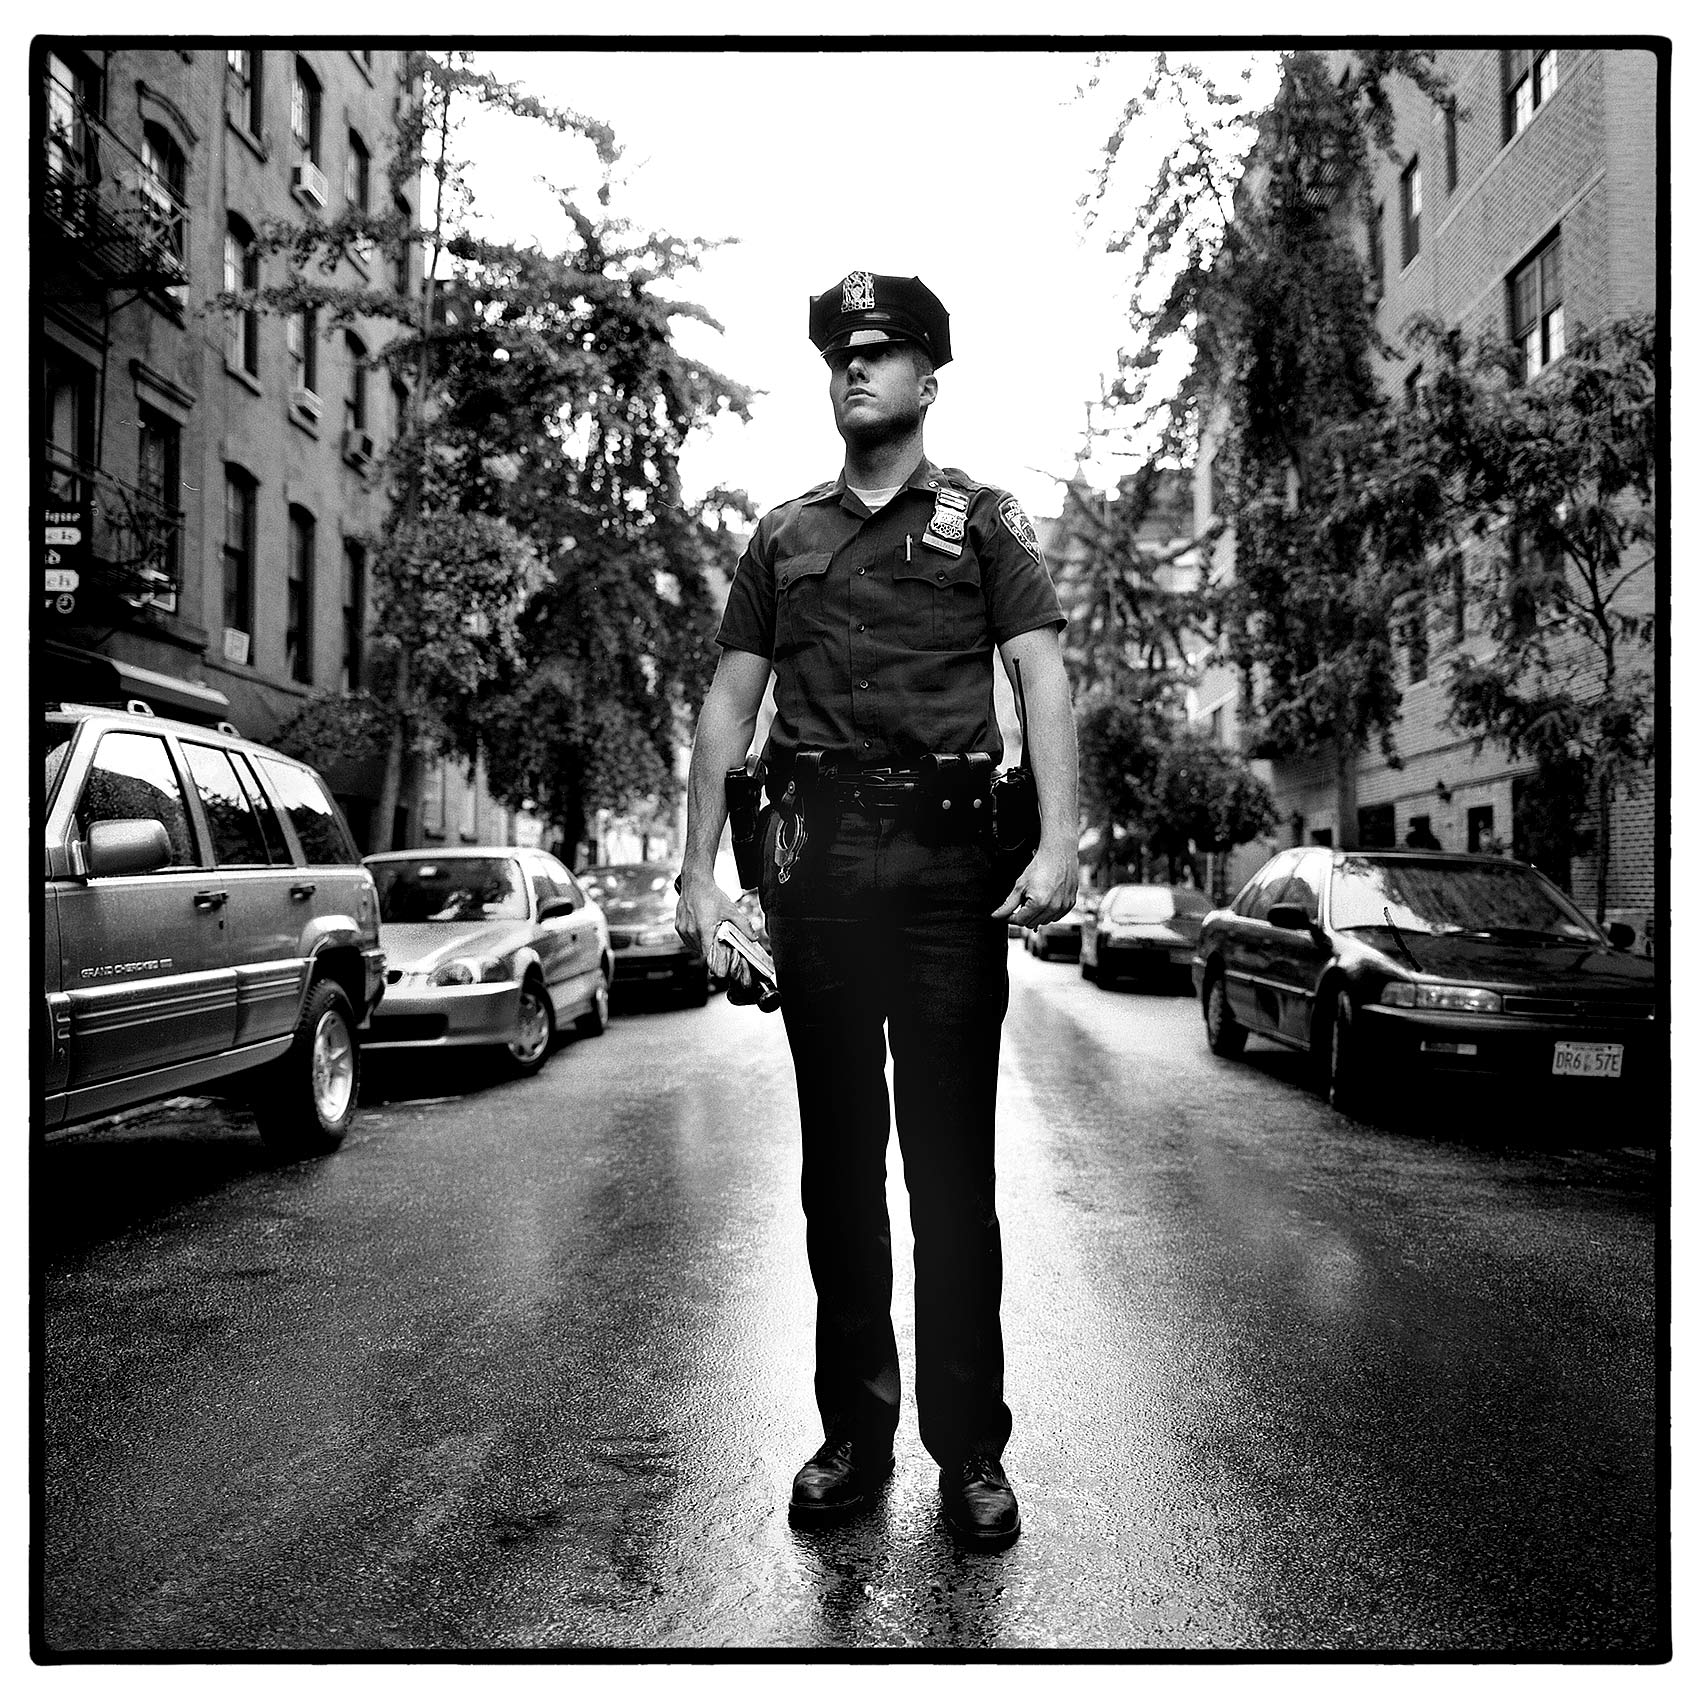 a-sixth-precinct-nypd-officer-poses-for-a-photo-in-new-yorks-greenwich-village